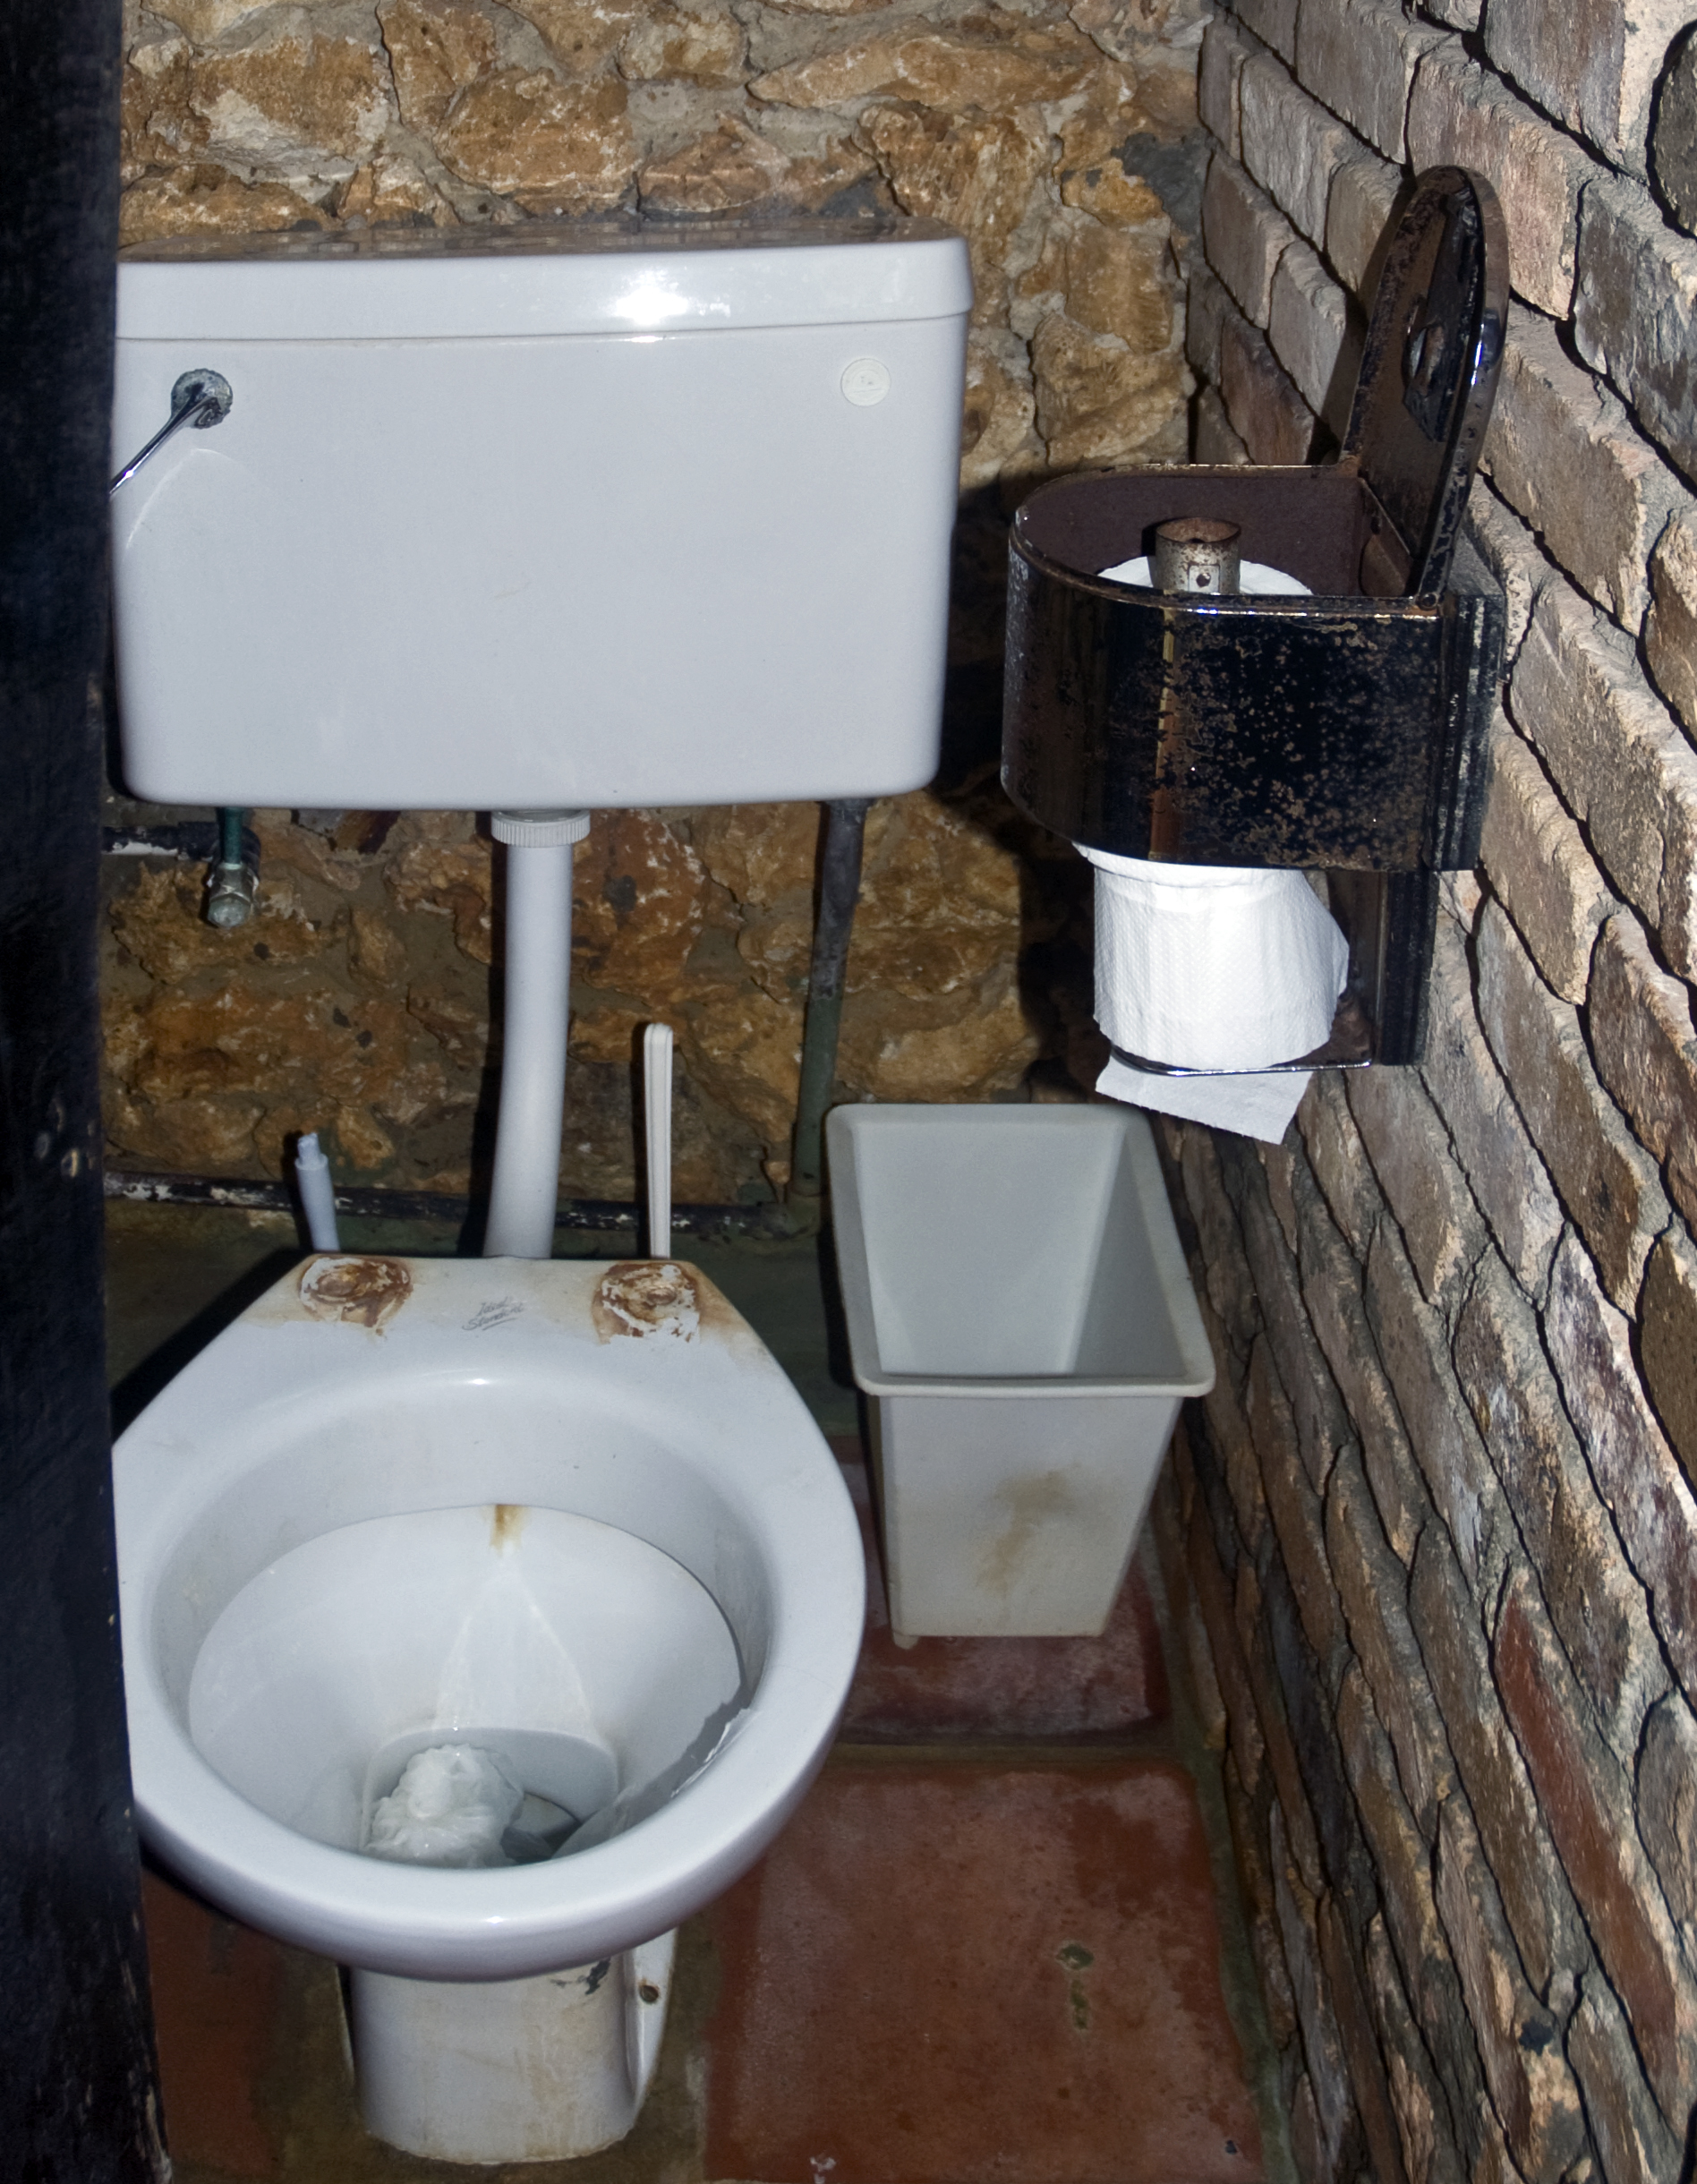 By Berit from Redhill/Surrey, UK - Toilet, CC BY 2.0